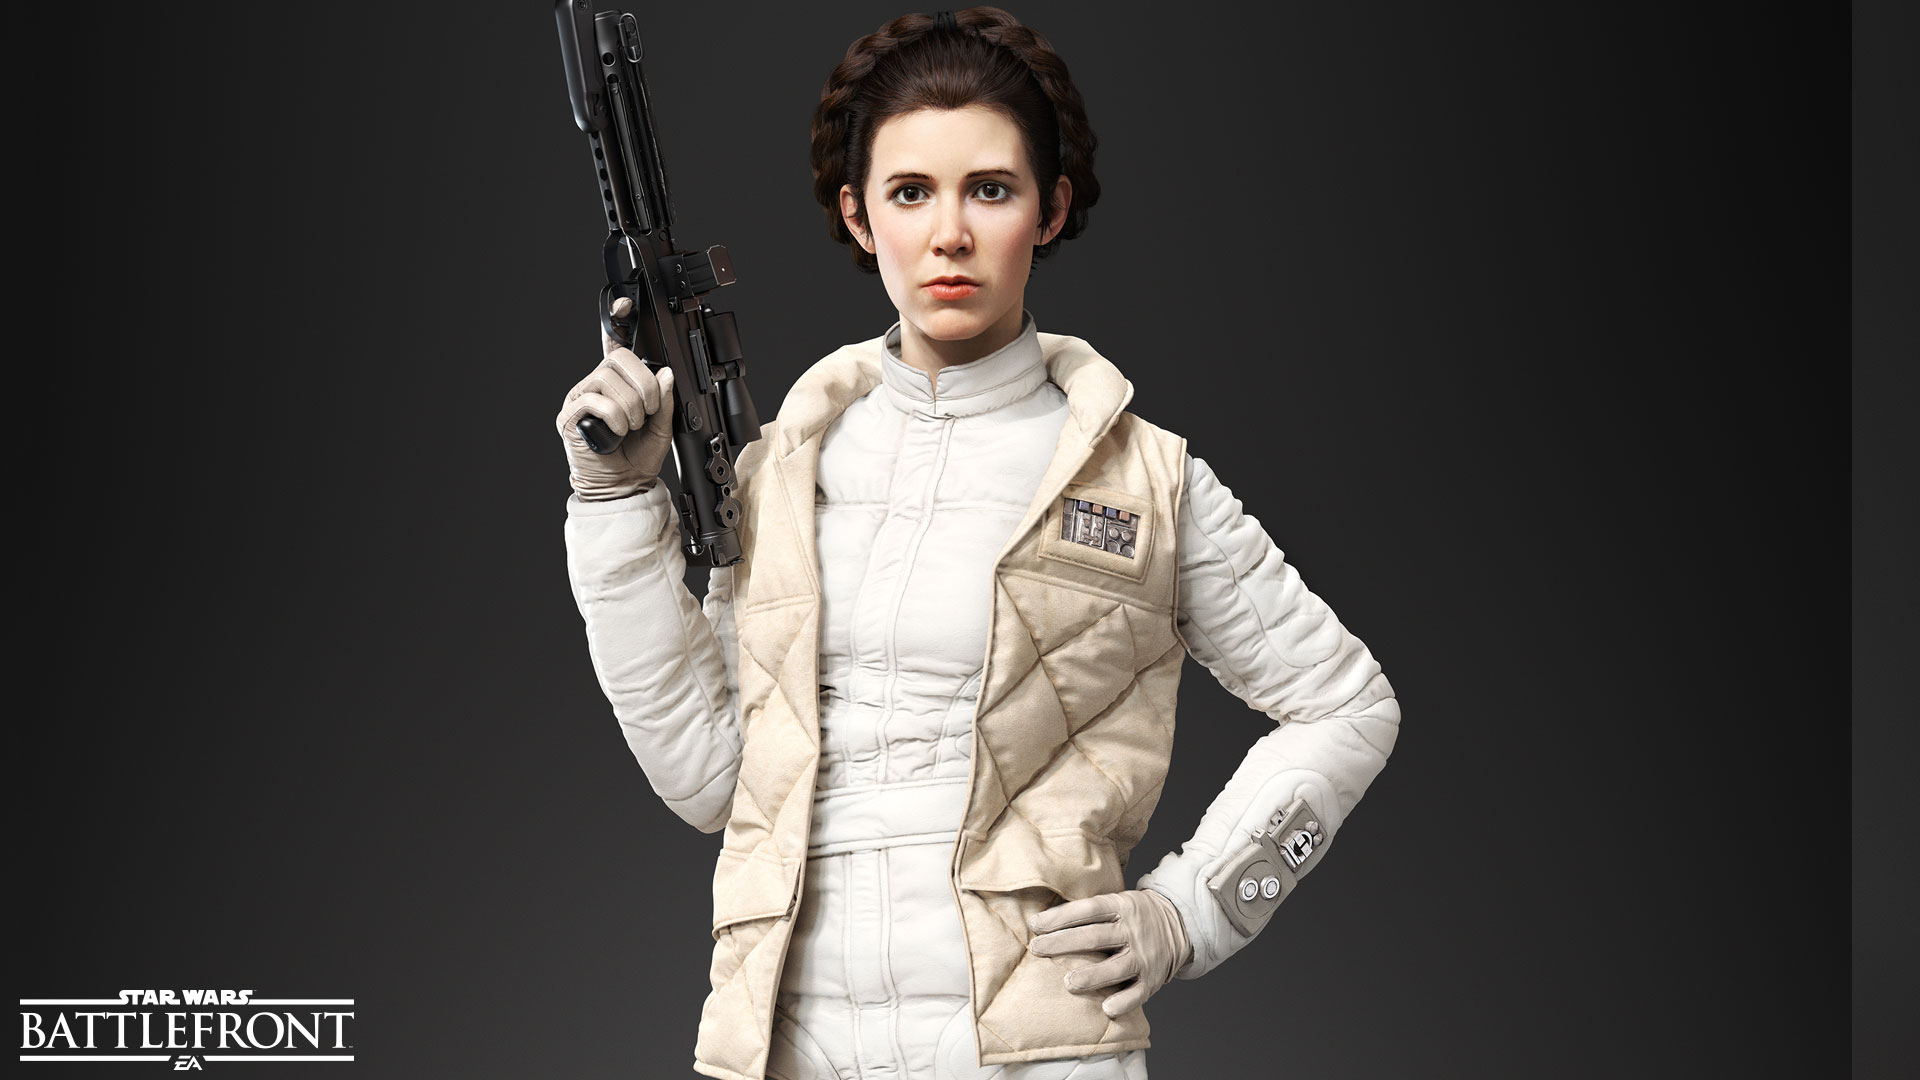 Star Wars Battlefront Heroes and Villains Revealed - 2015-10-20 12:25:50